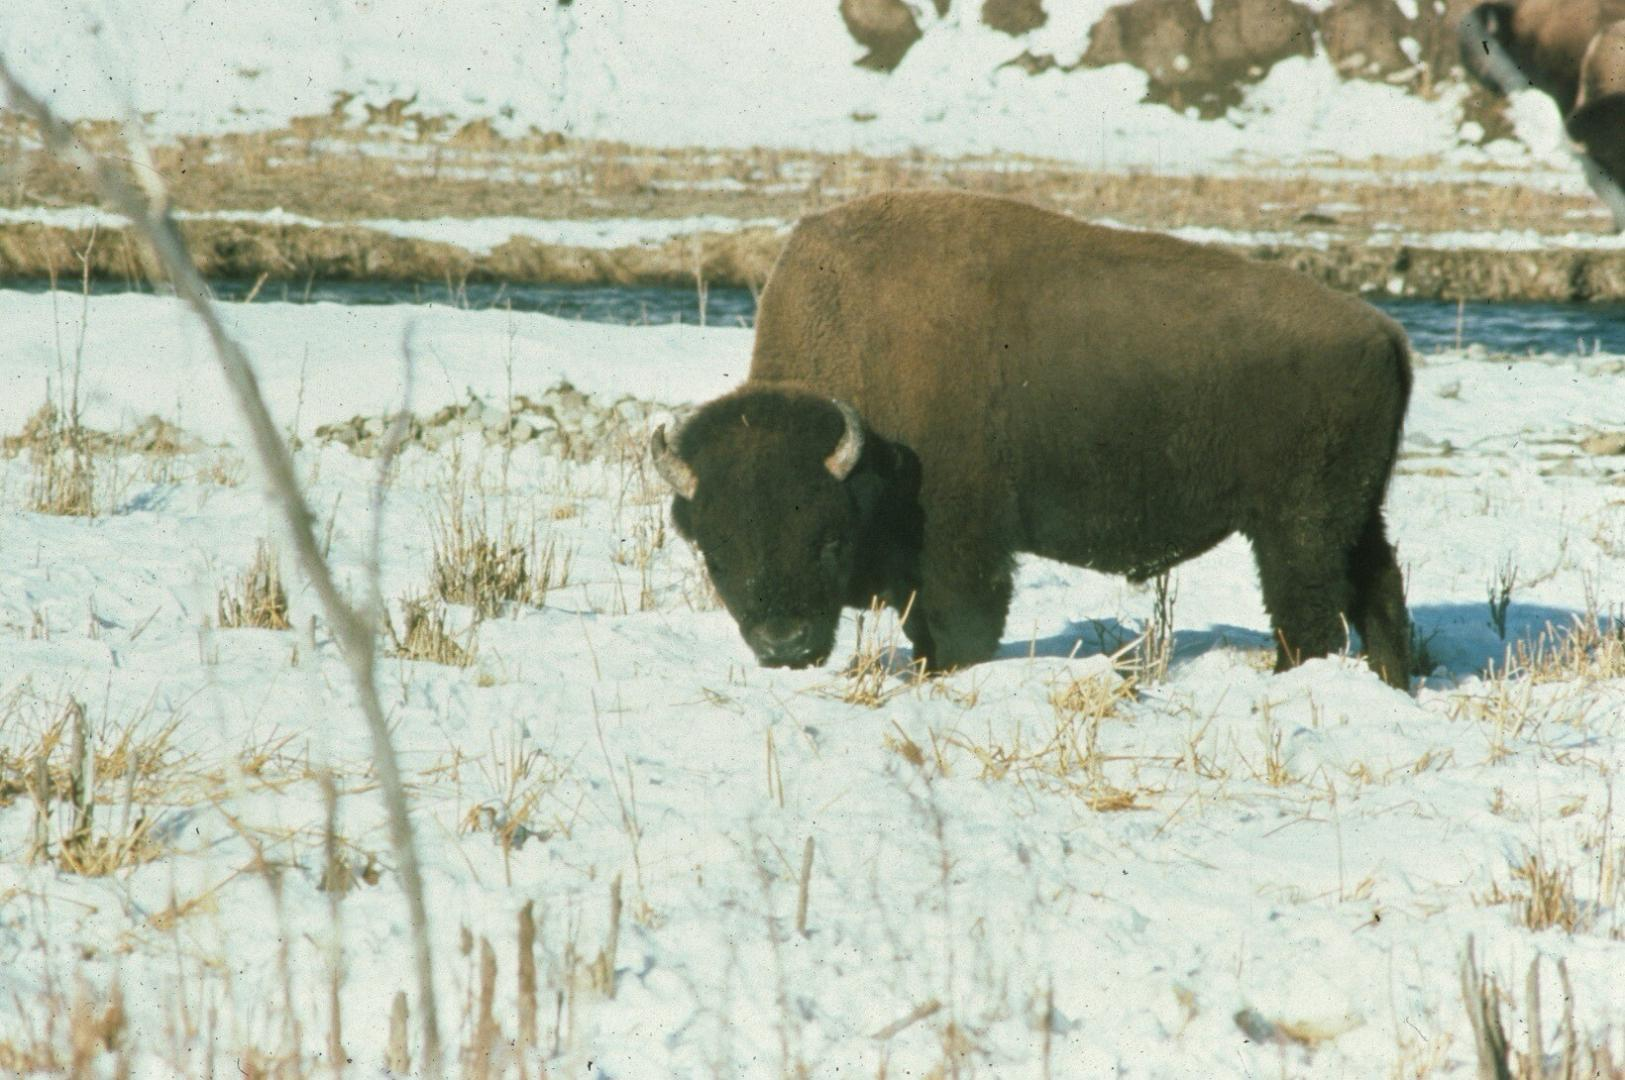 Powerful juggernaut of the North American Plains, a prime bull bison finds forage to survive another day...another week... another winter in Yellowstone National Park © University of Idaho and the American Ecological Research Institute (—AERIE)